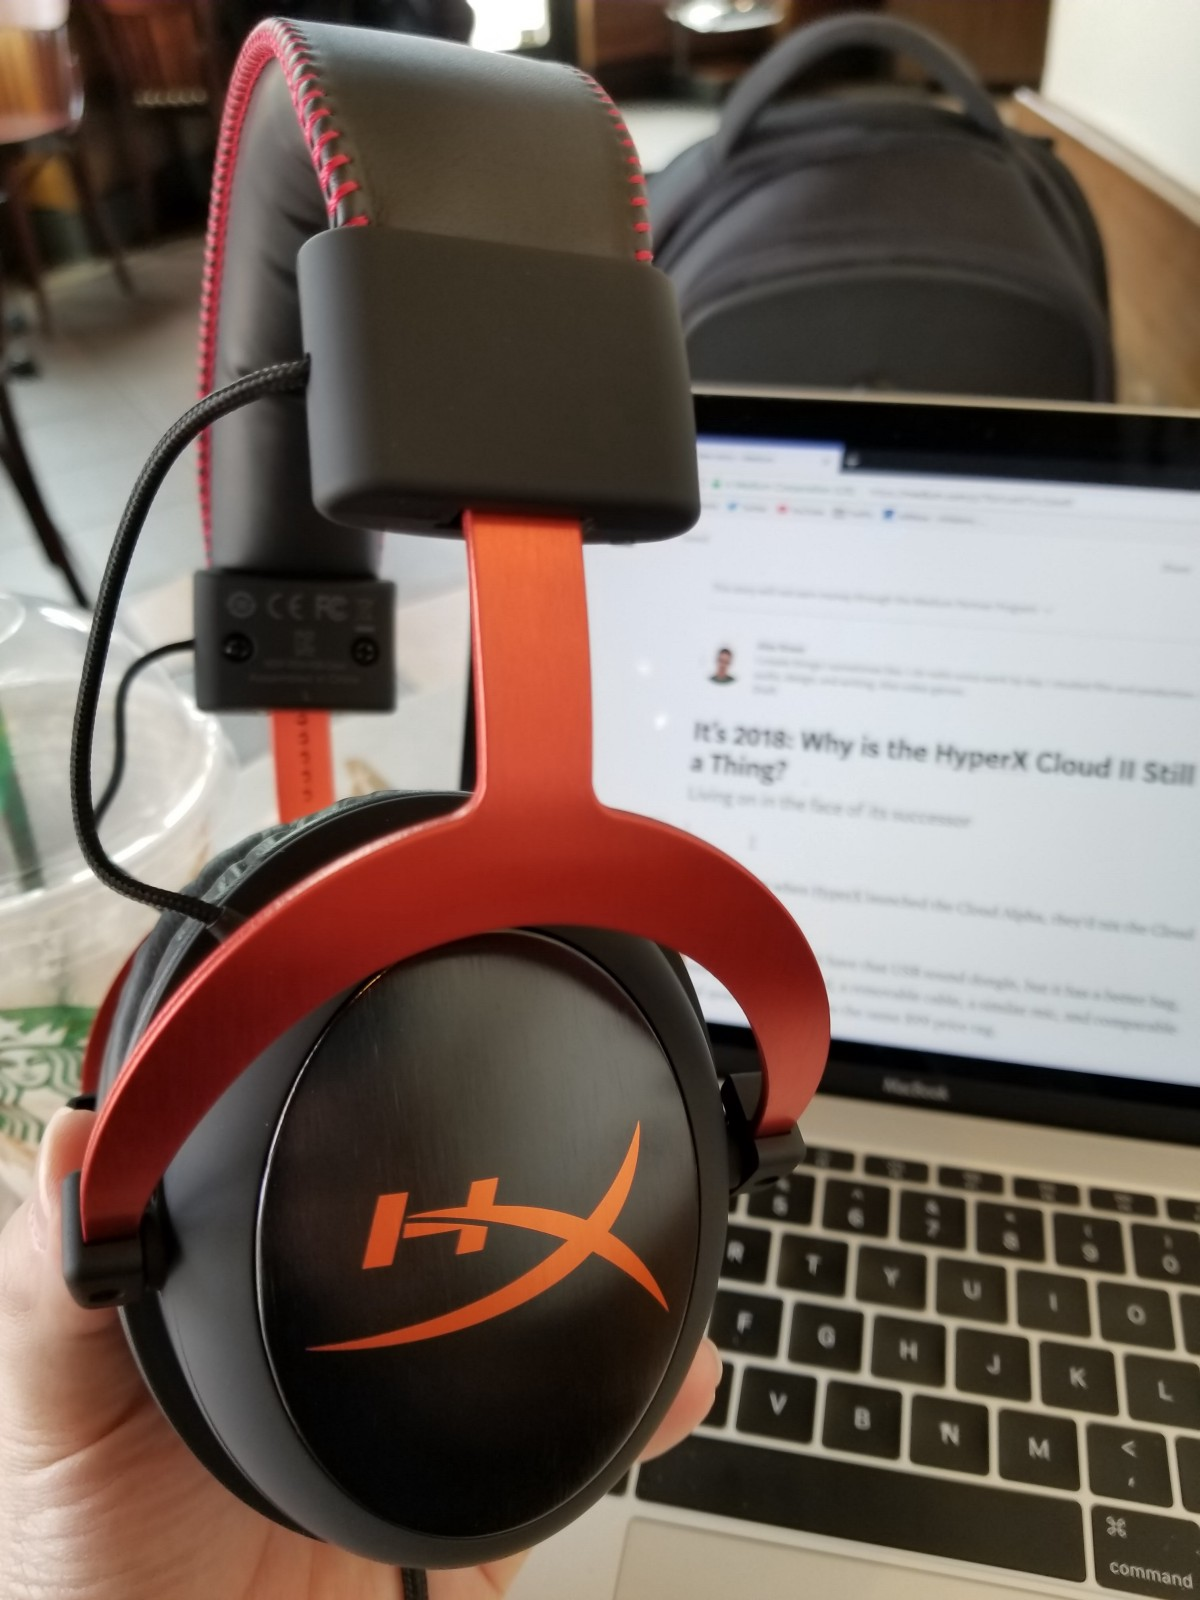 It's 2018: Why is the HyperX Cloud II Still Around?